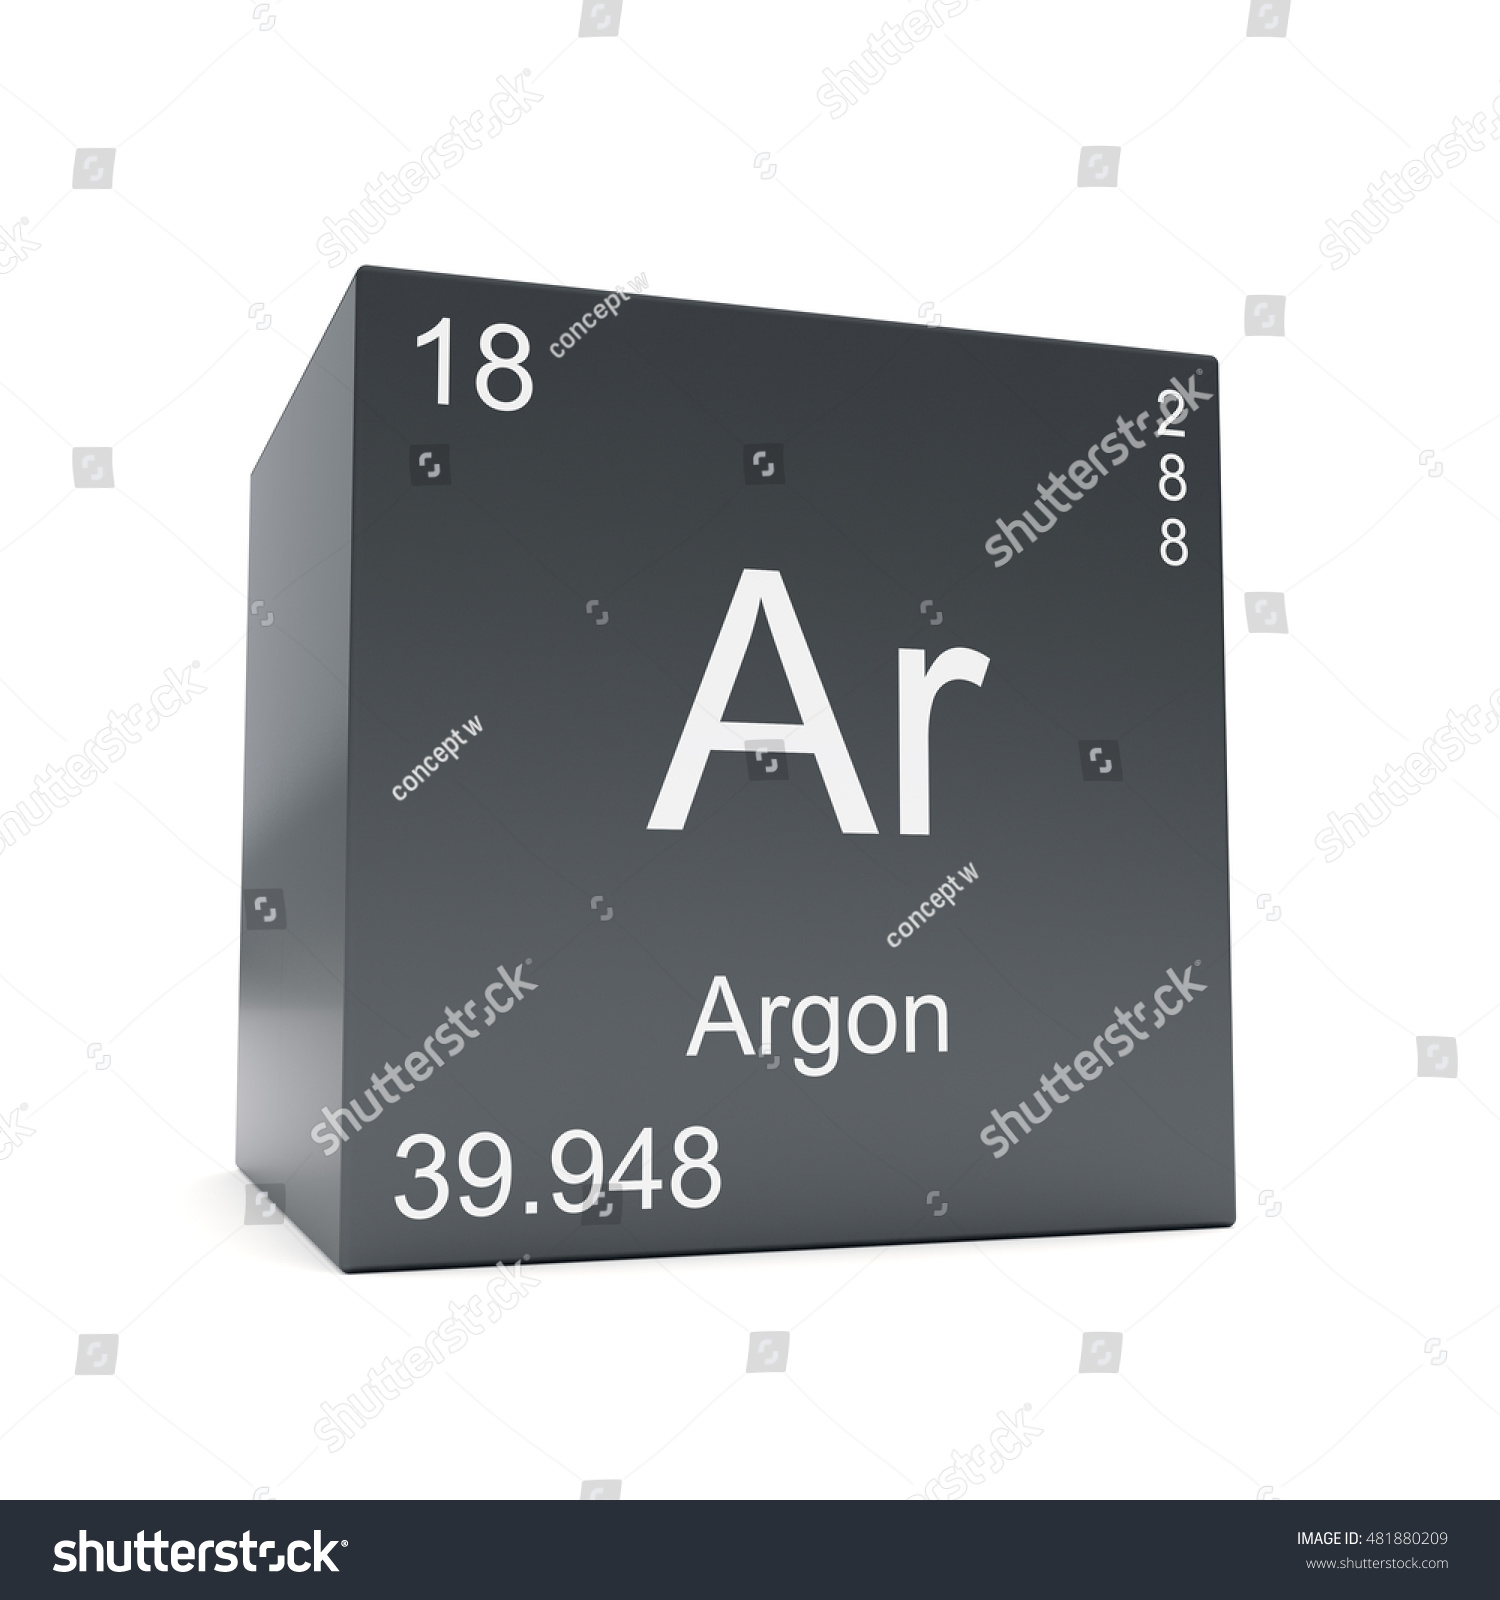 Argon chemical element symbol periodic table stock illustration argon chemical element symbol from the periodic table displayed on black cube 3d render gamestrikefo Choice Image